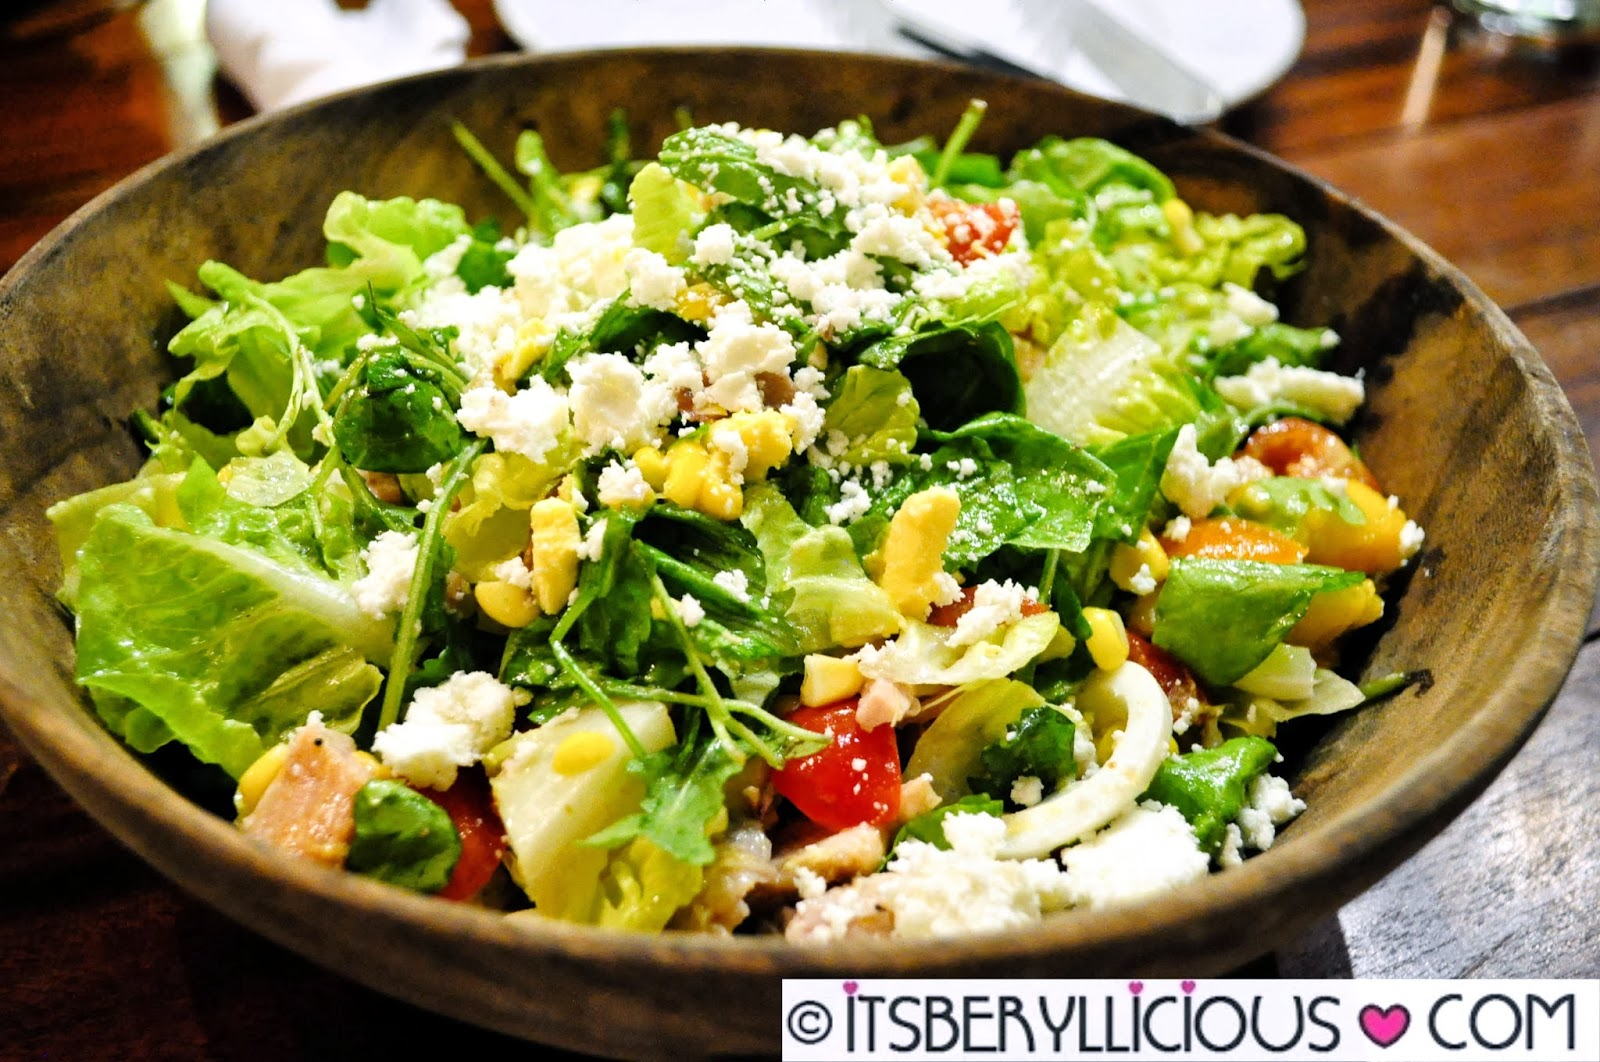 ... salad of the month or go for bestsellers like this farmhouse salad